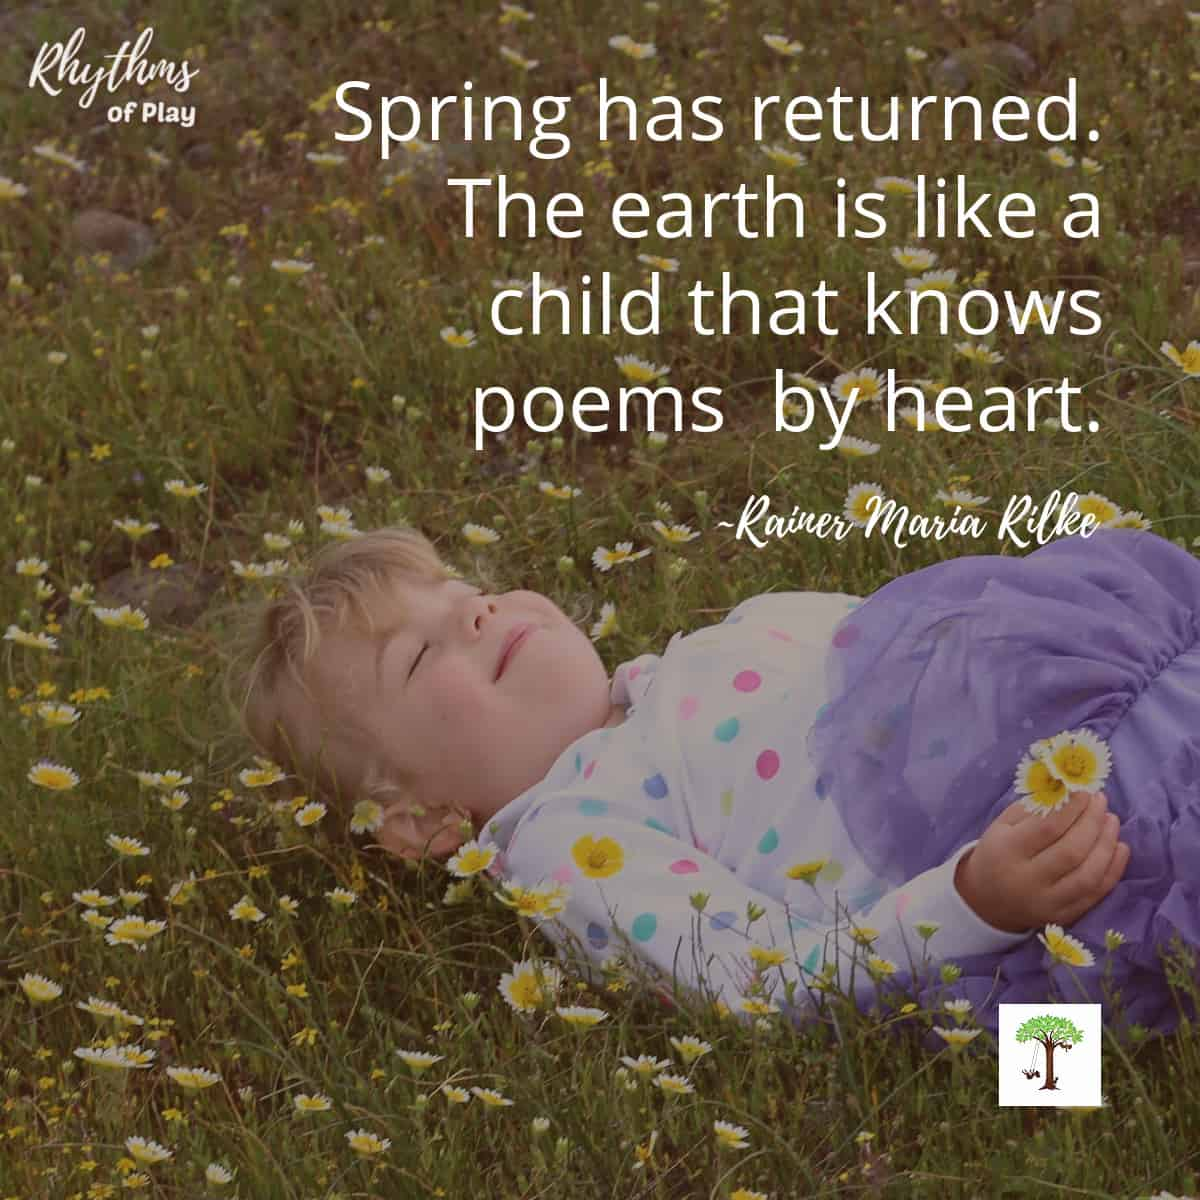 """preschool girl laying down in a field of wildflowers with quote, """"Spring has returned. The earth is like a child that knows poems by heart."""""""